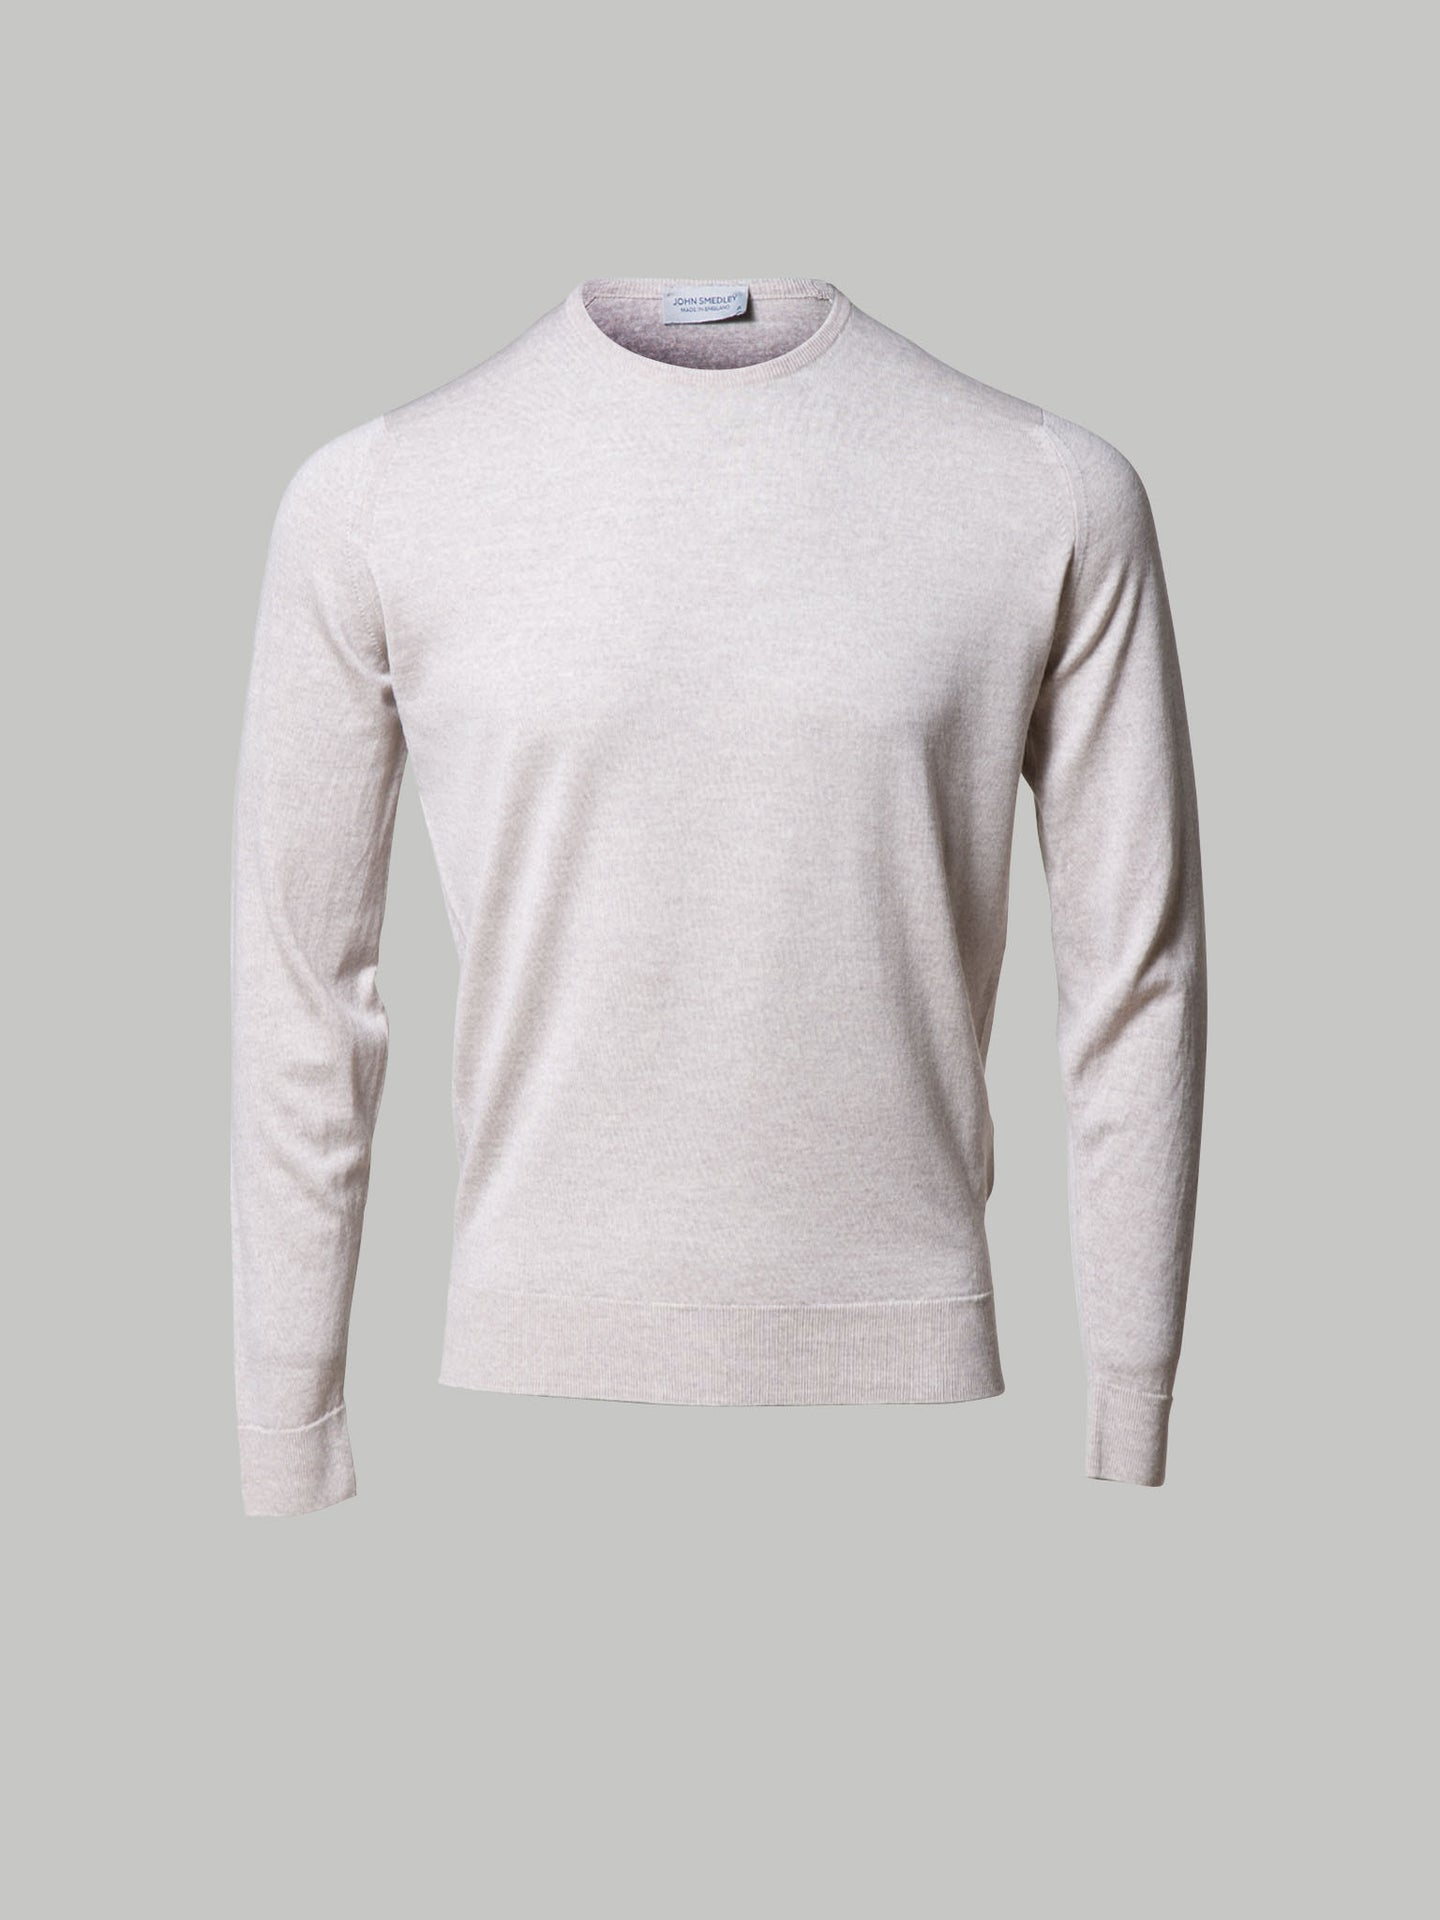 John Smedley Lundy Crew Neck Knit (Eastwood Beige)